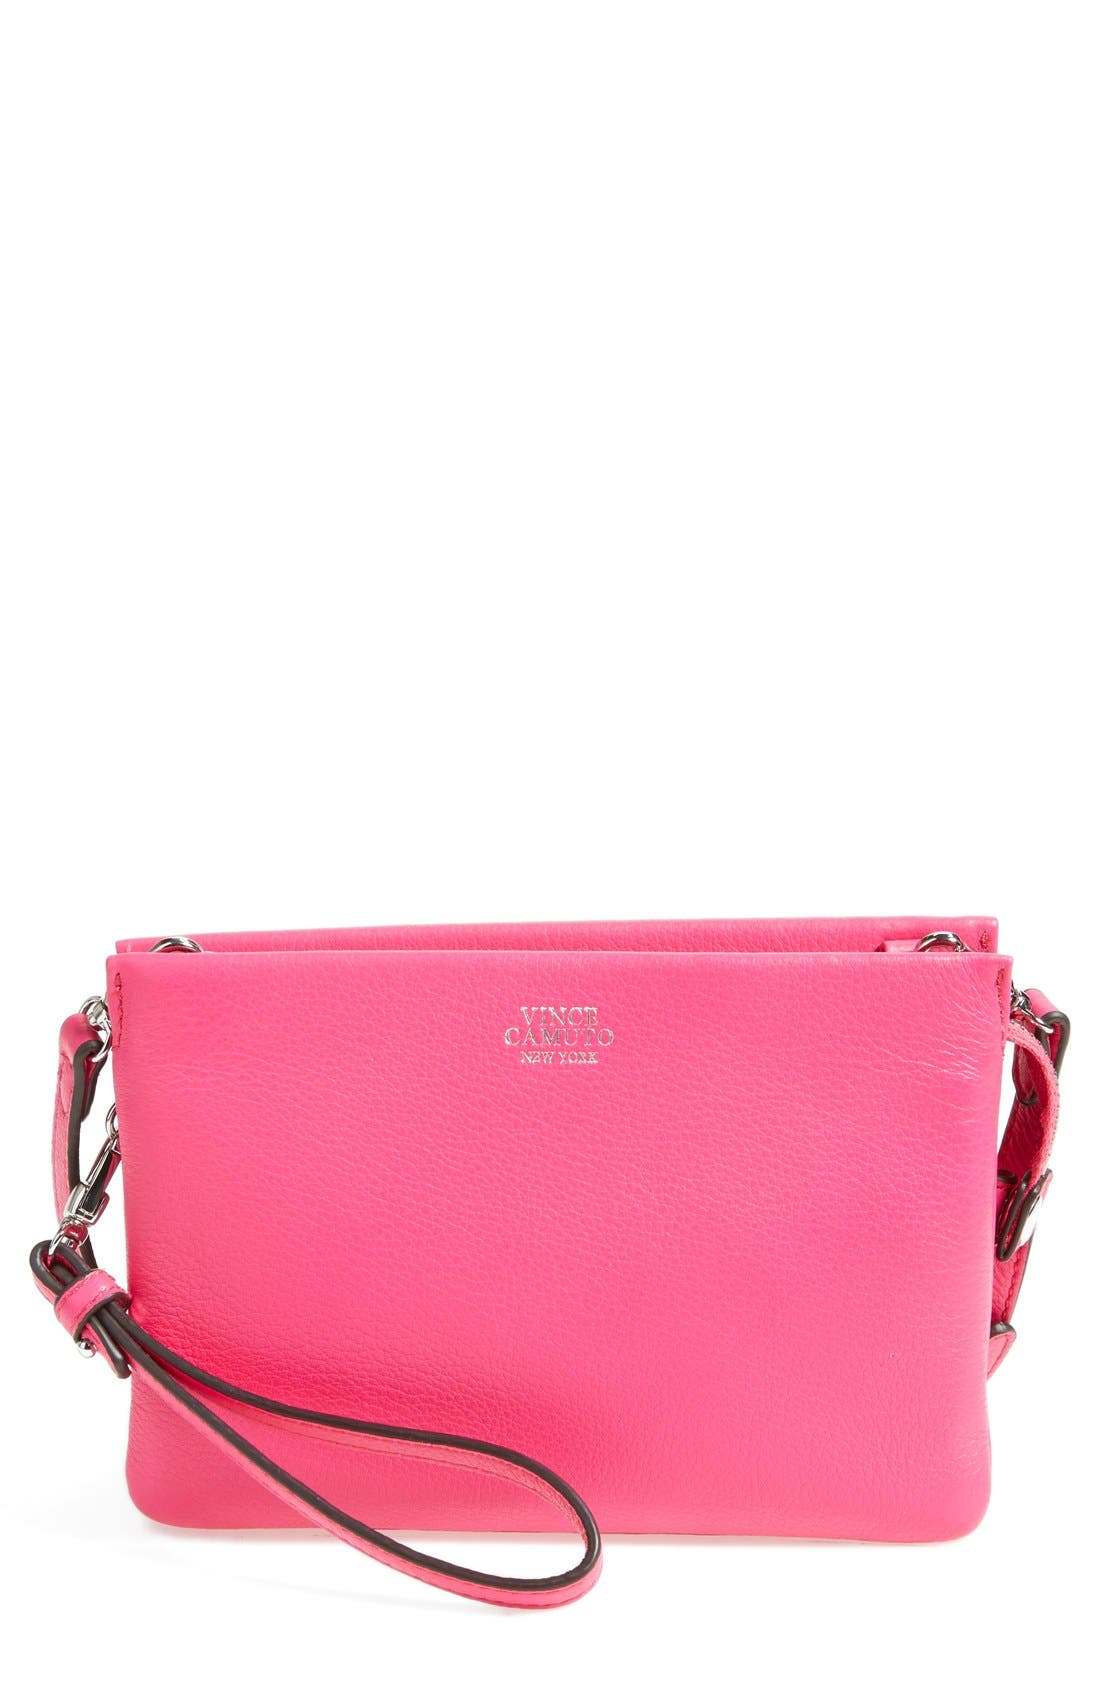 'Cami' Leather Crossbody Bag,                             Main thumbnail 26, color,